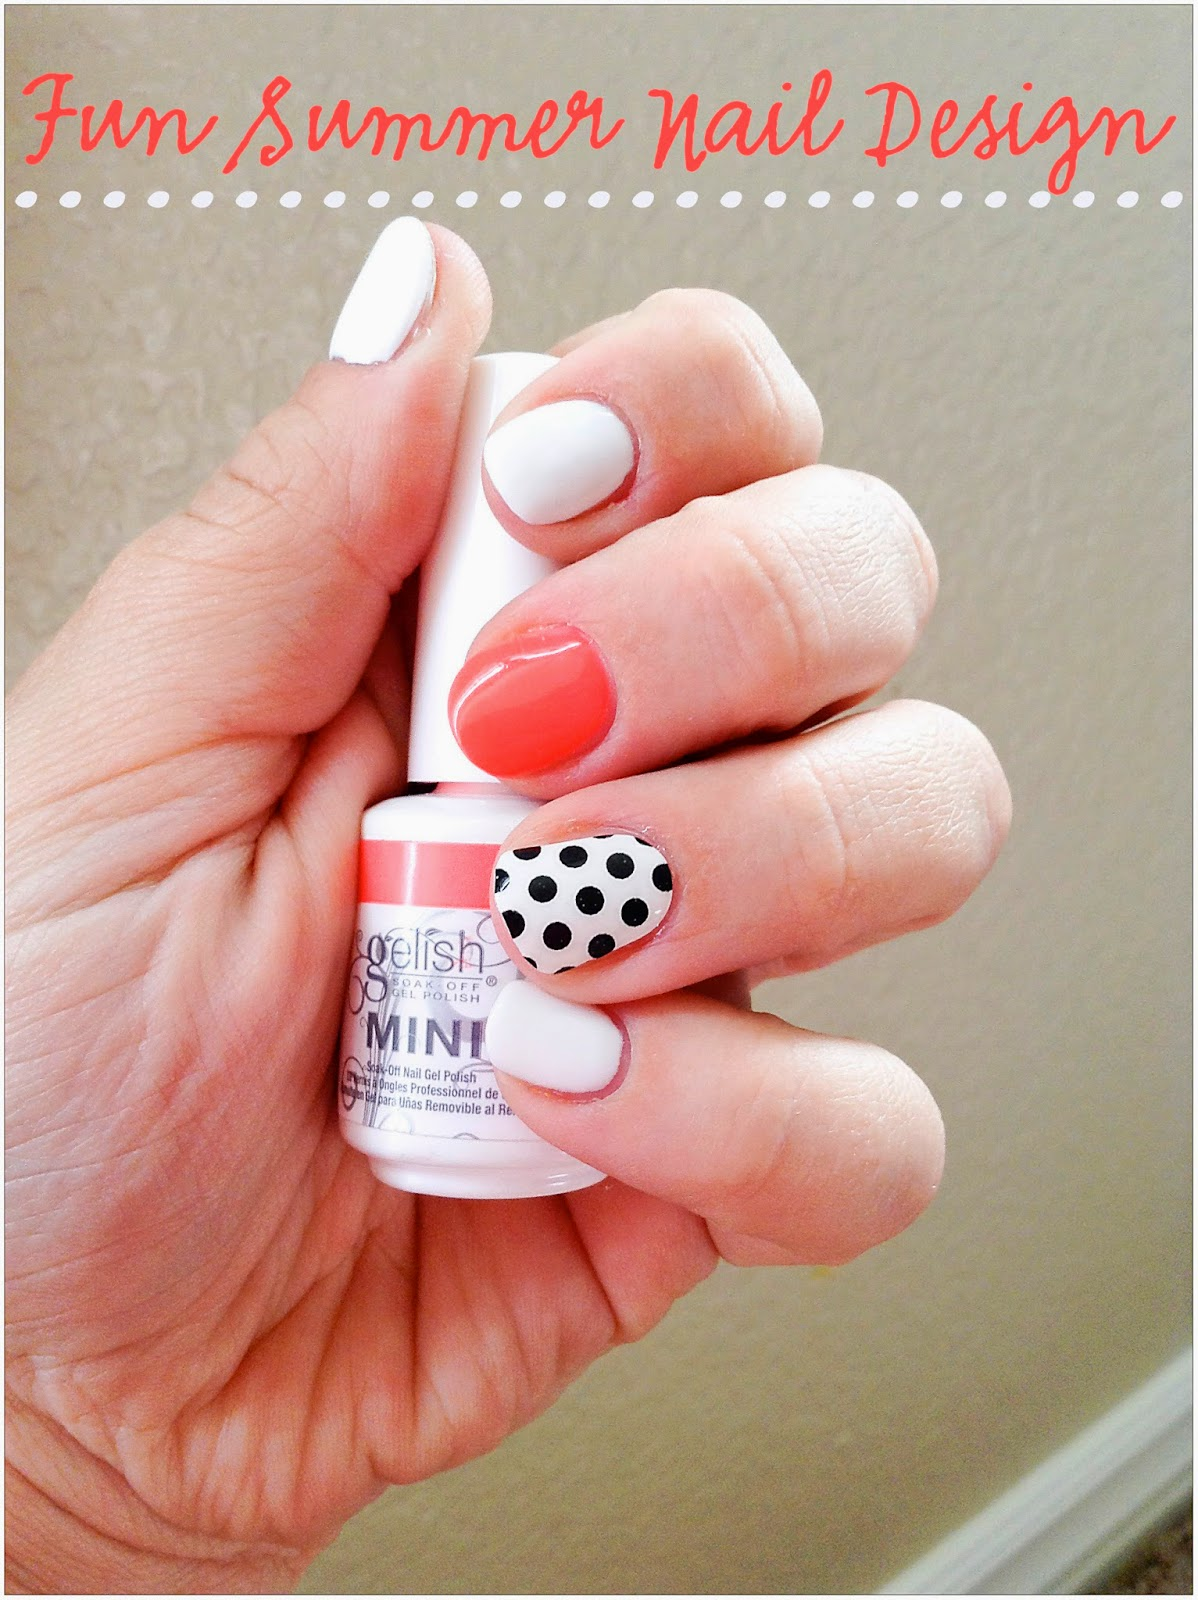 Simply Girly: Fun Summer Nails Design